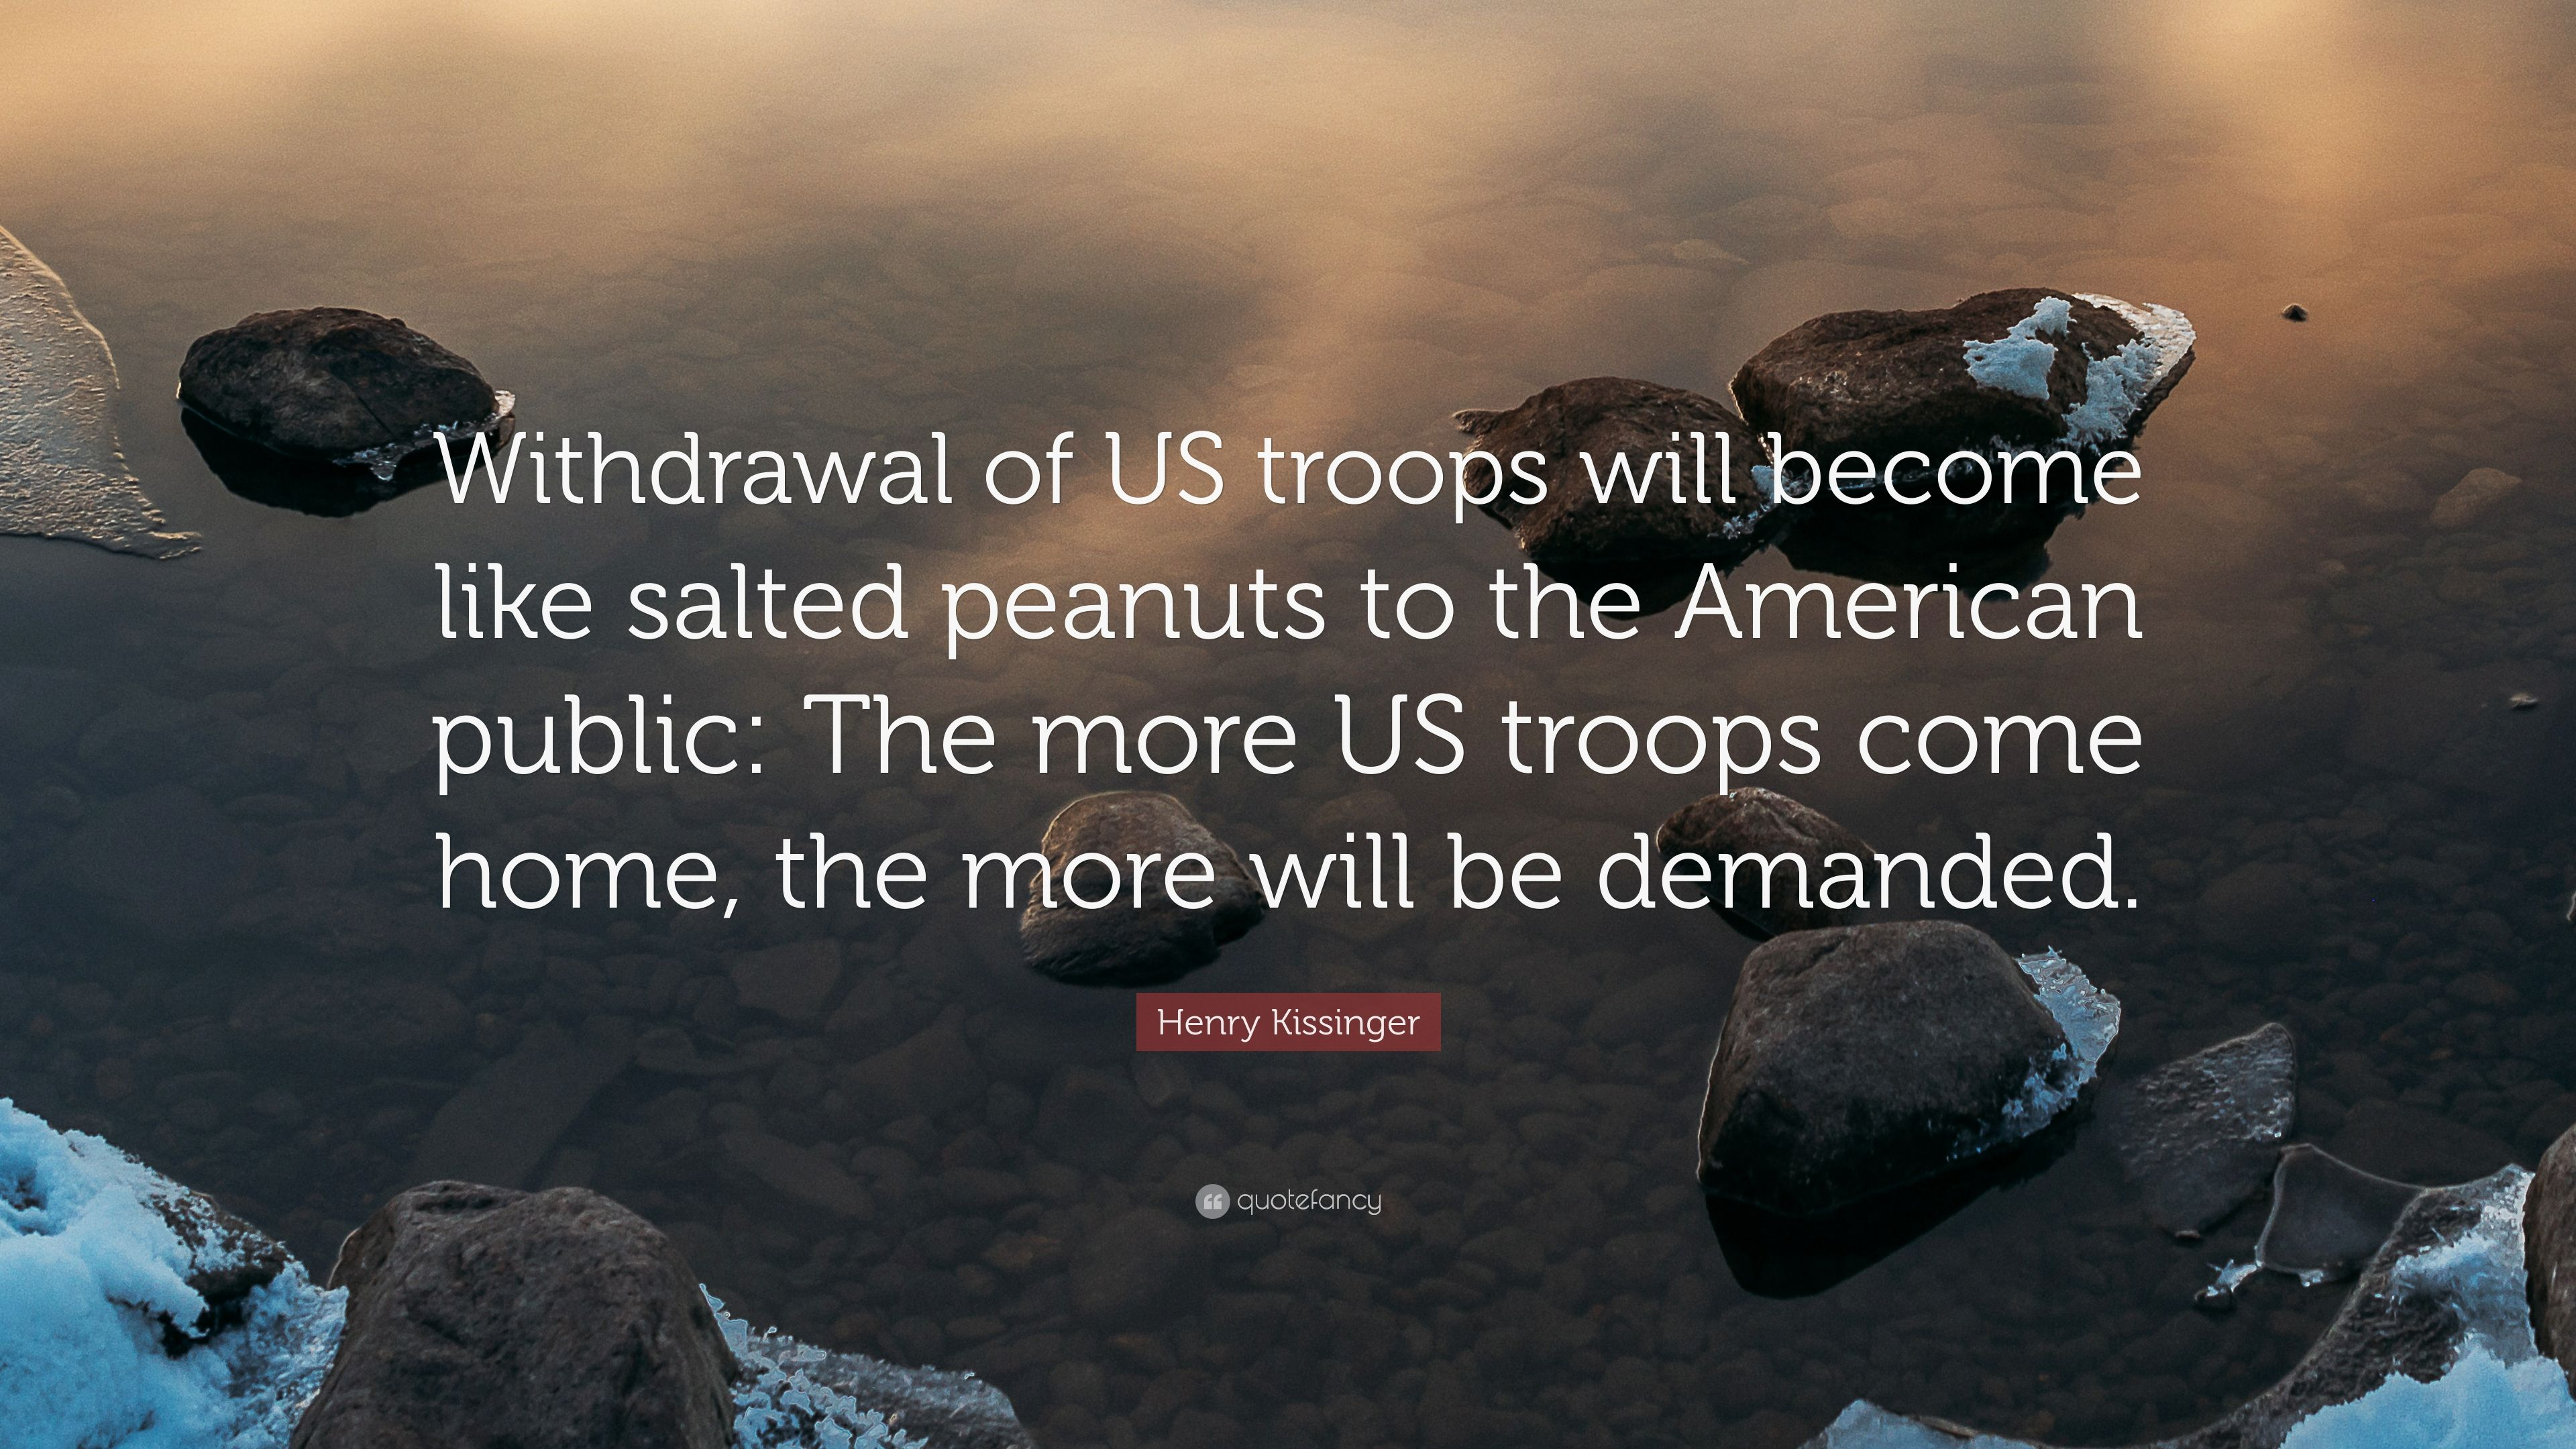 Henry Kissinger Quote Withdrawal Of US Troops Will Become Like Salted Peanuts To The